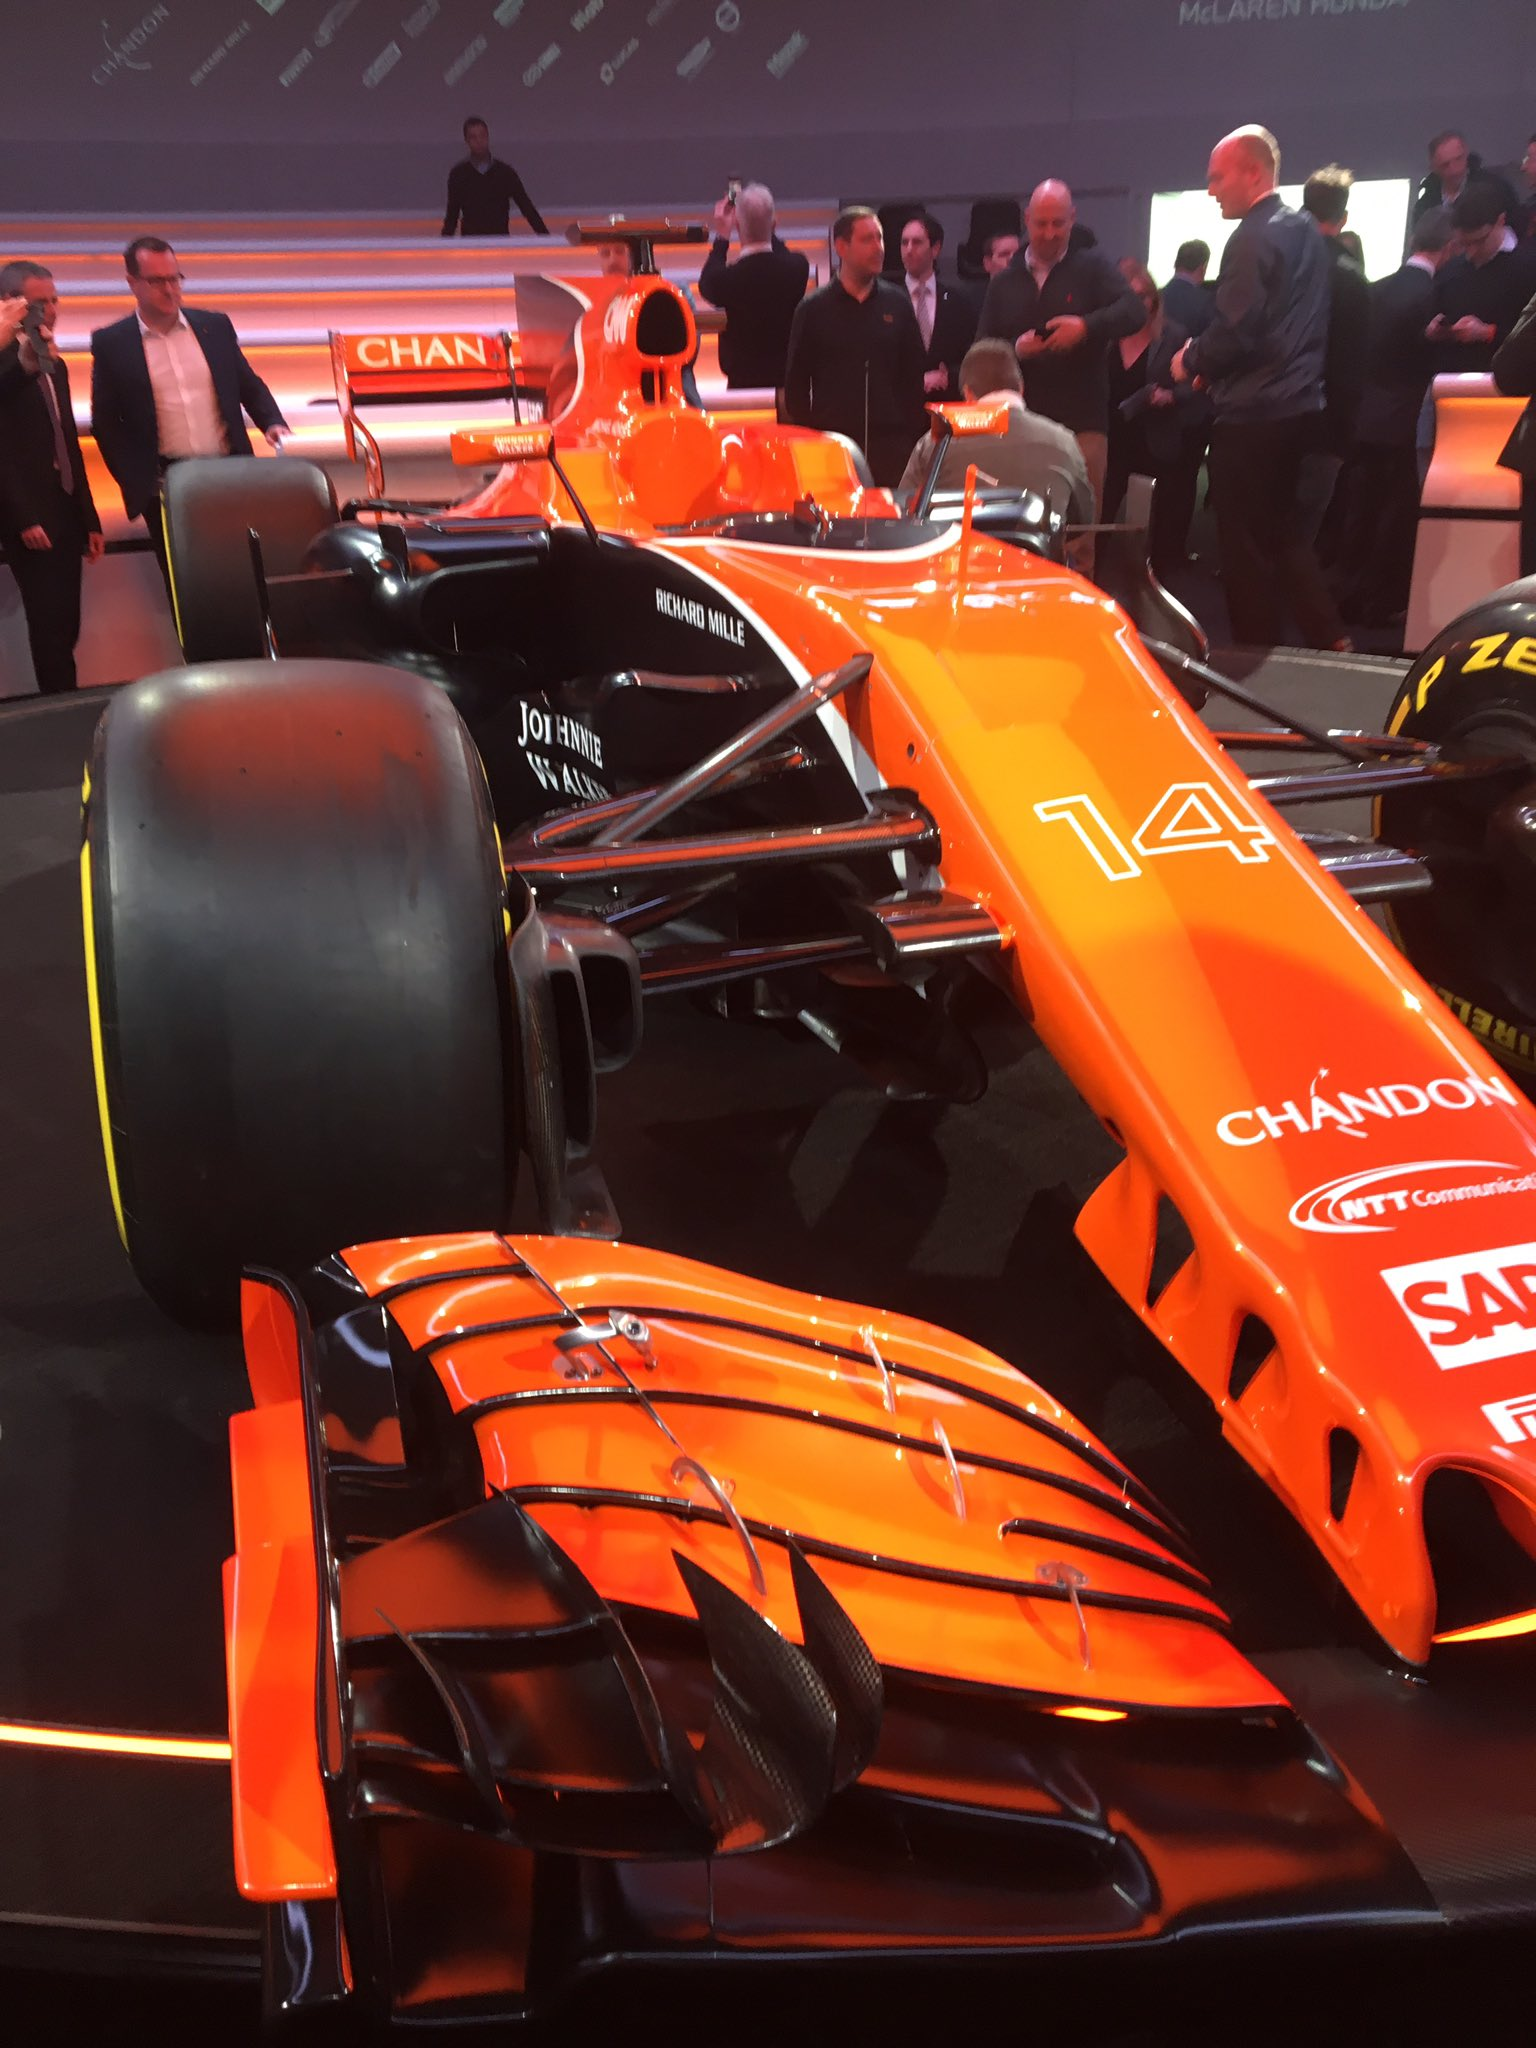 McLaren Has Actually Done It—Their 2017 F1 Car is Orange ...